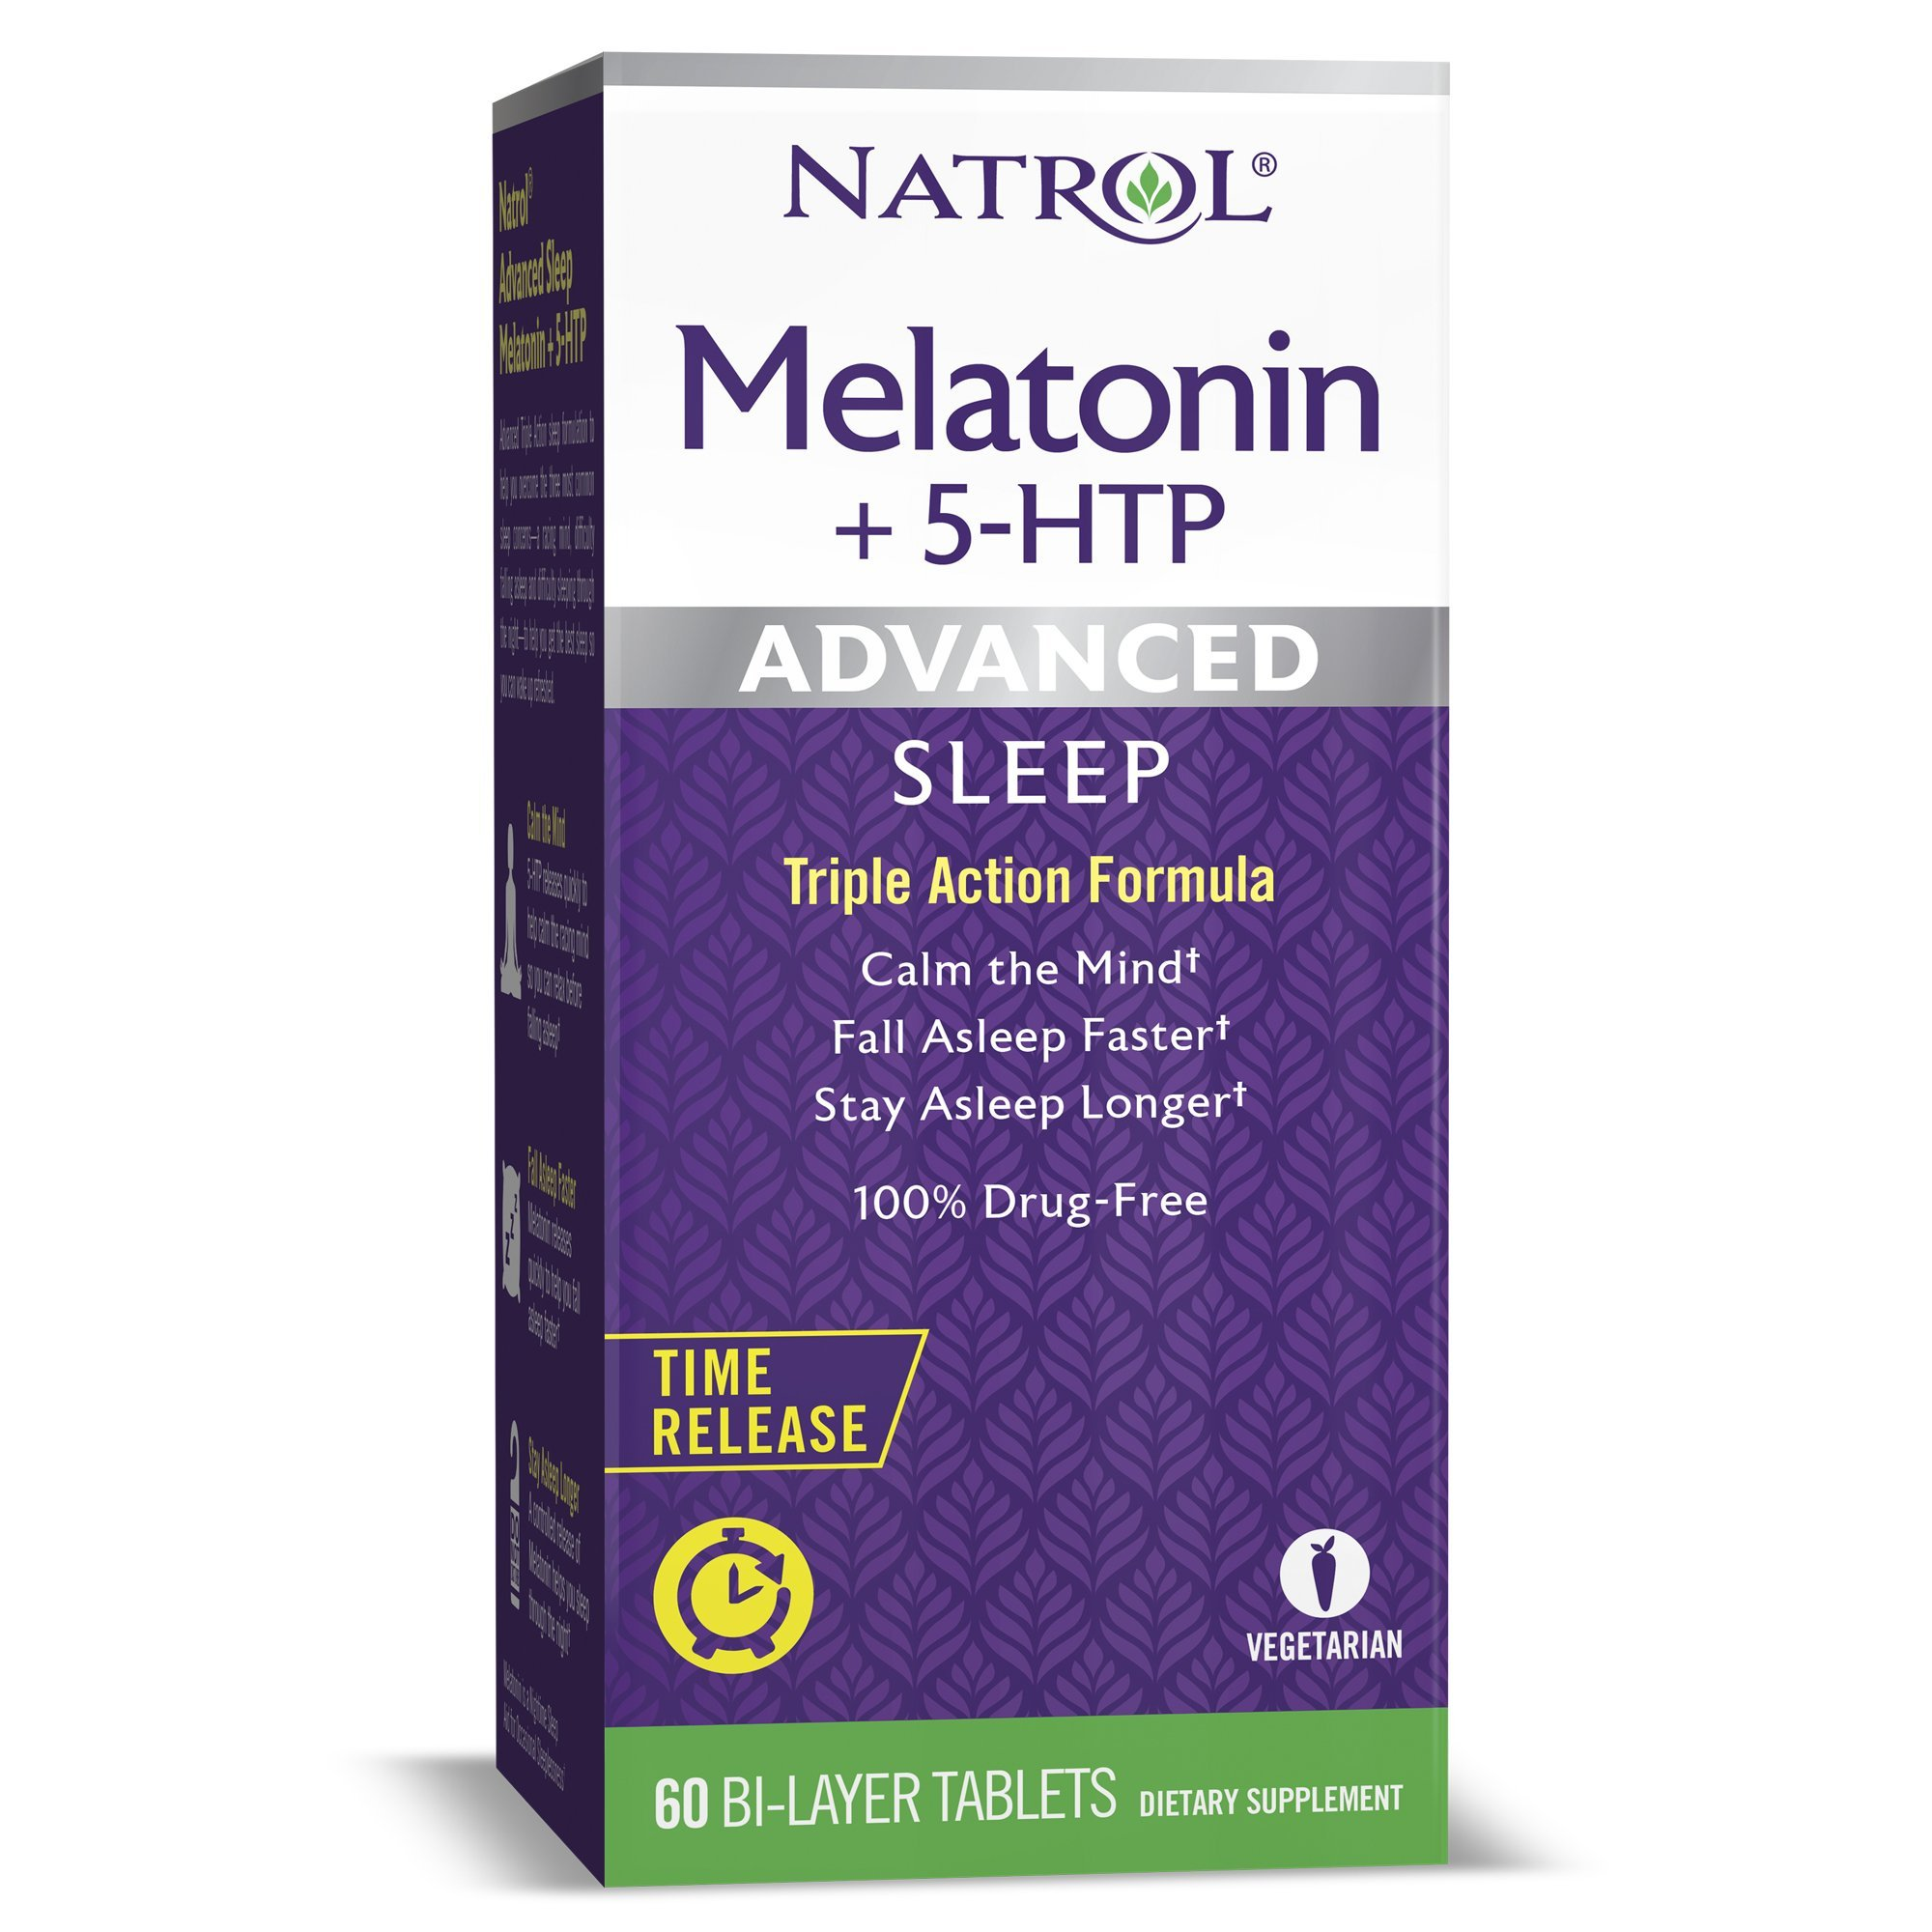 Natrol Advanced Sleep Melatonin + 5 HTP Bi-Layer Tablets, 60 Count